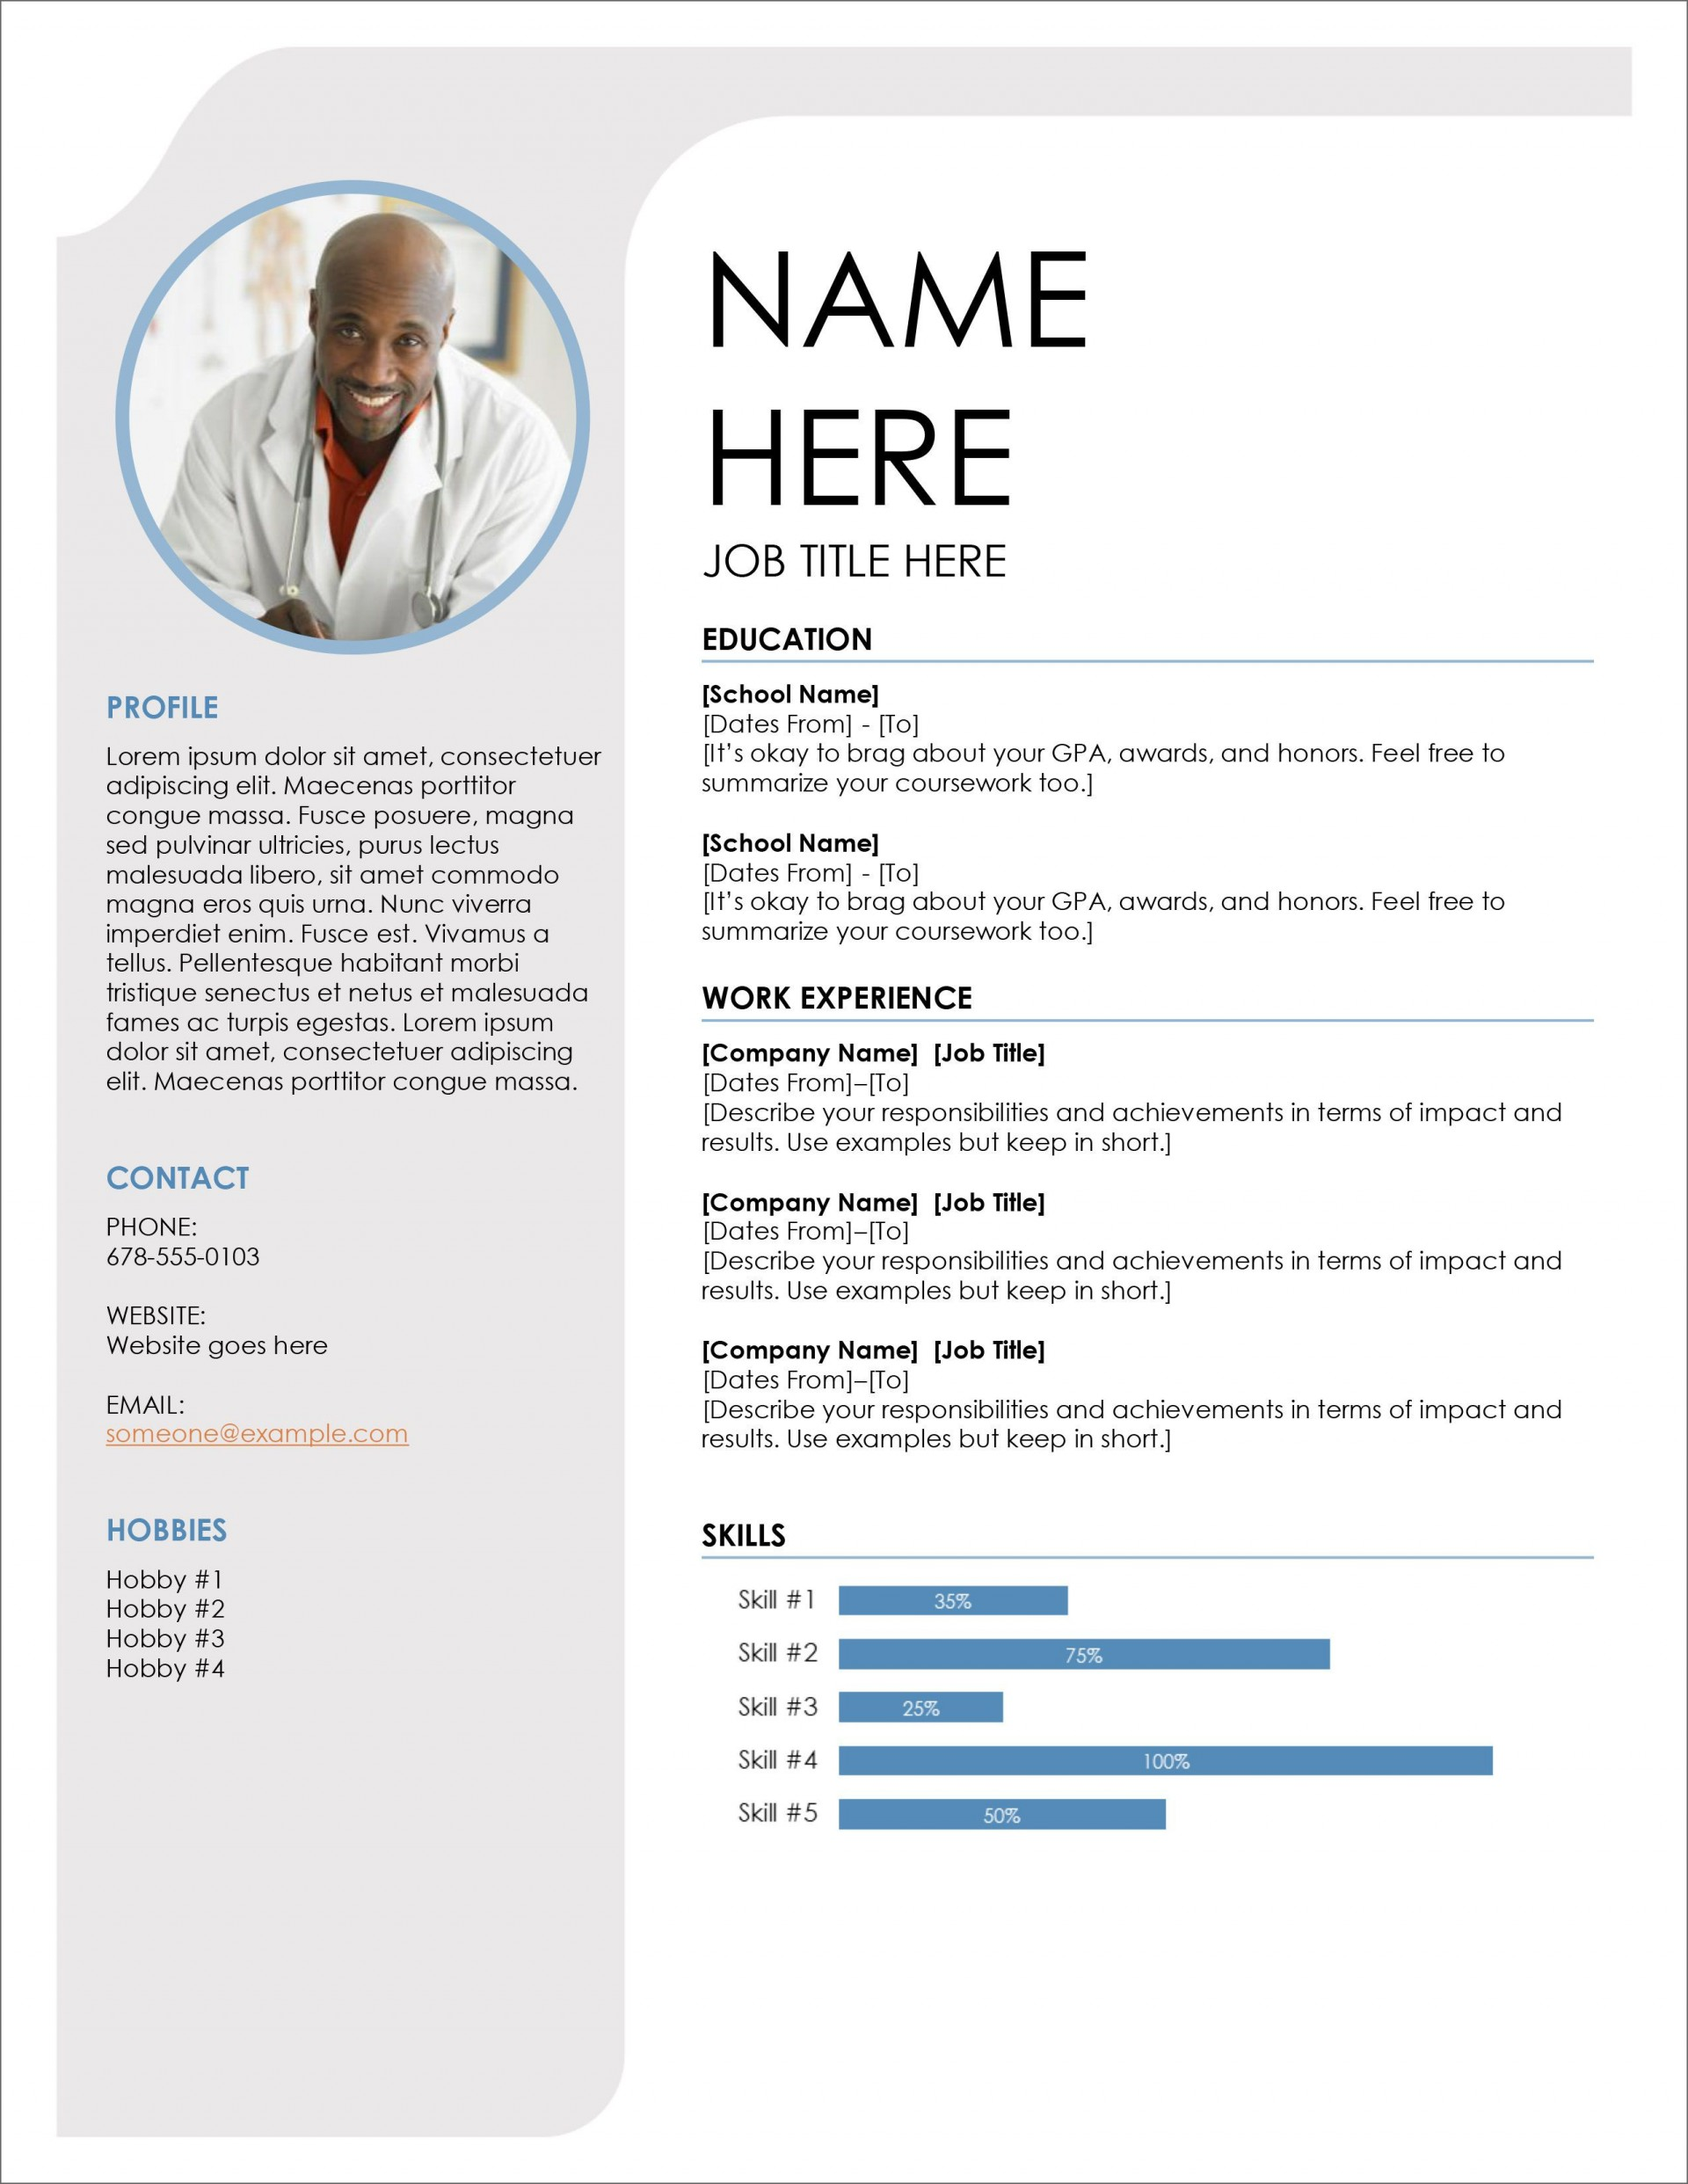 005 Marvelou Cv Template Free Download Word Doc Design  Editable Document For Fresher Student Engineer1920